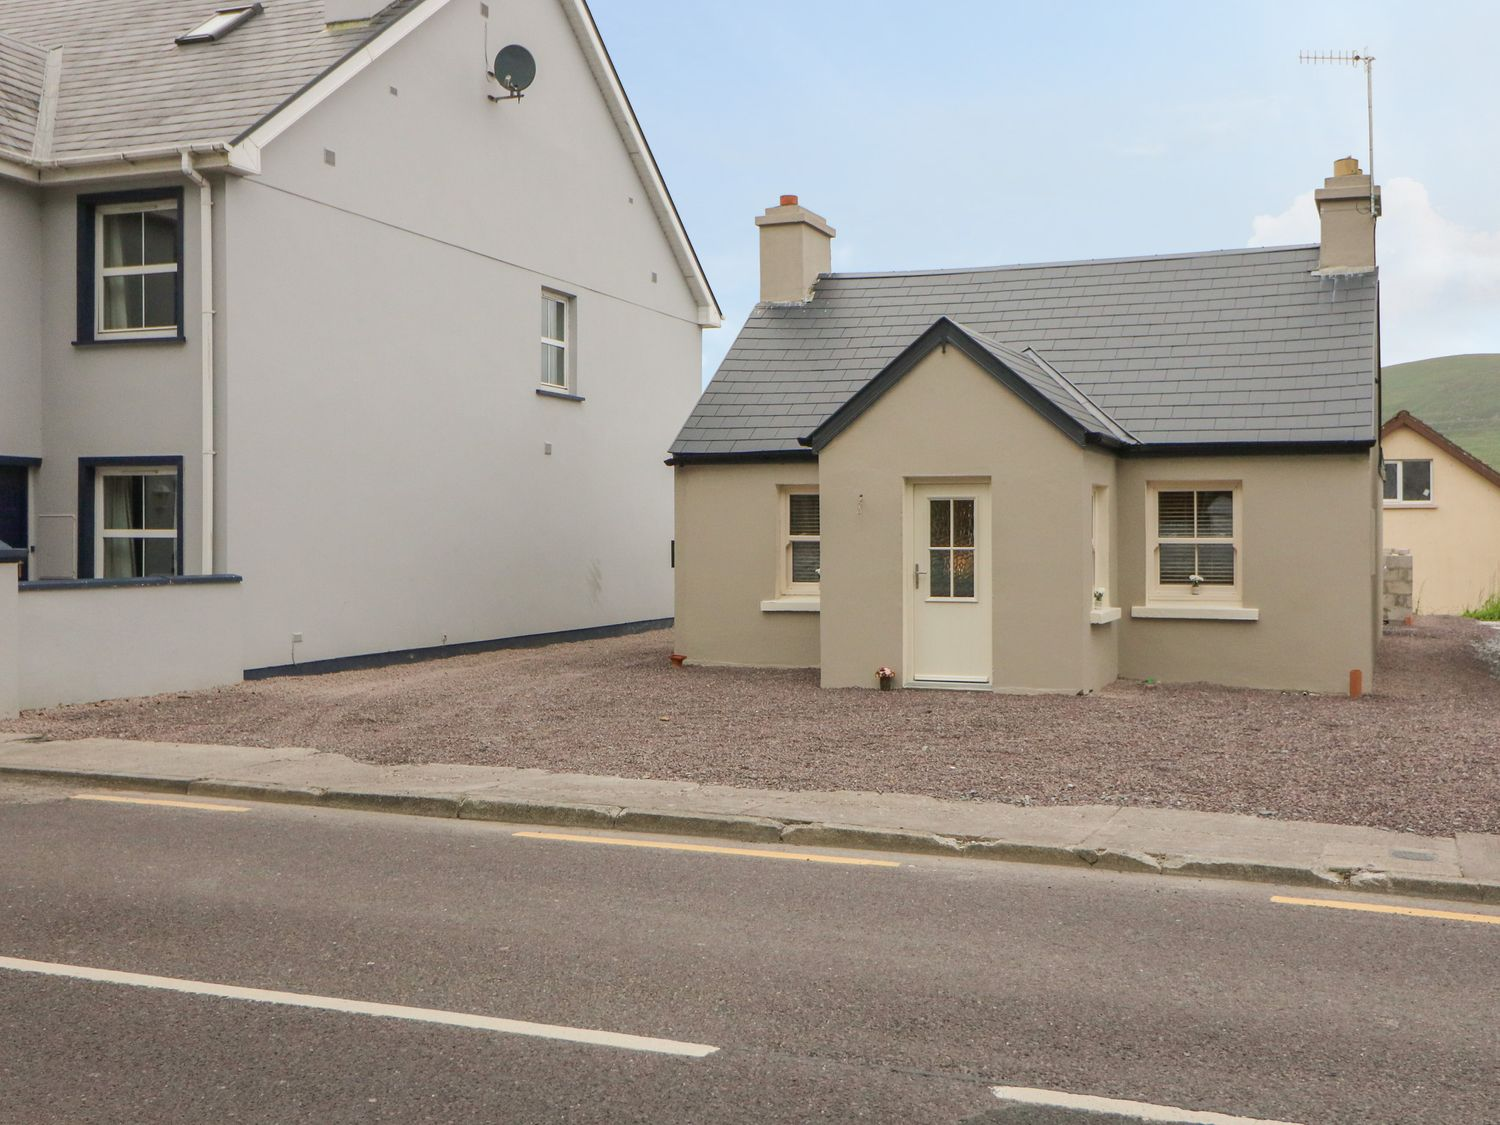 6 Carhan Rd - County Kerry - 1021398 - photo 1